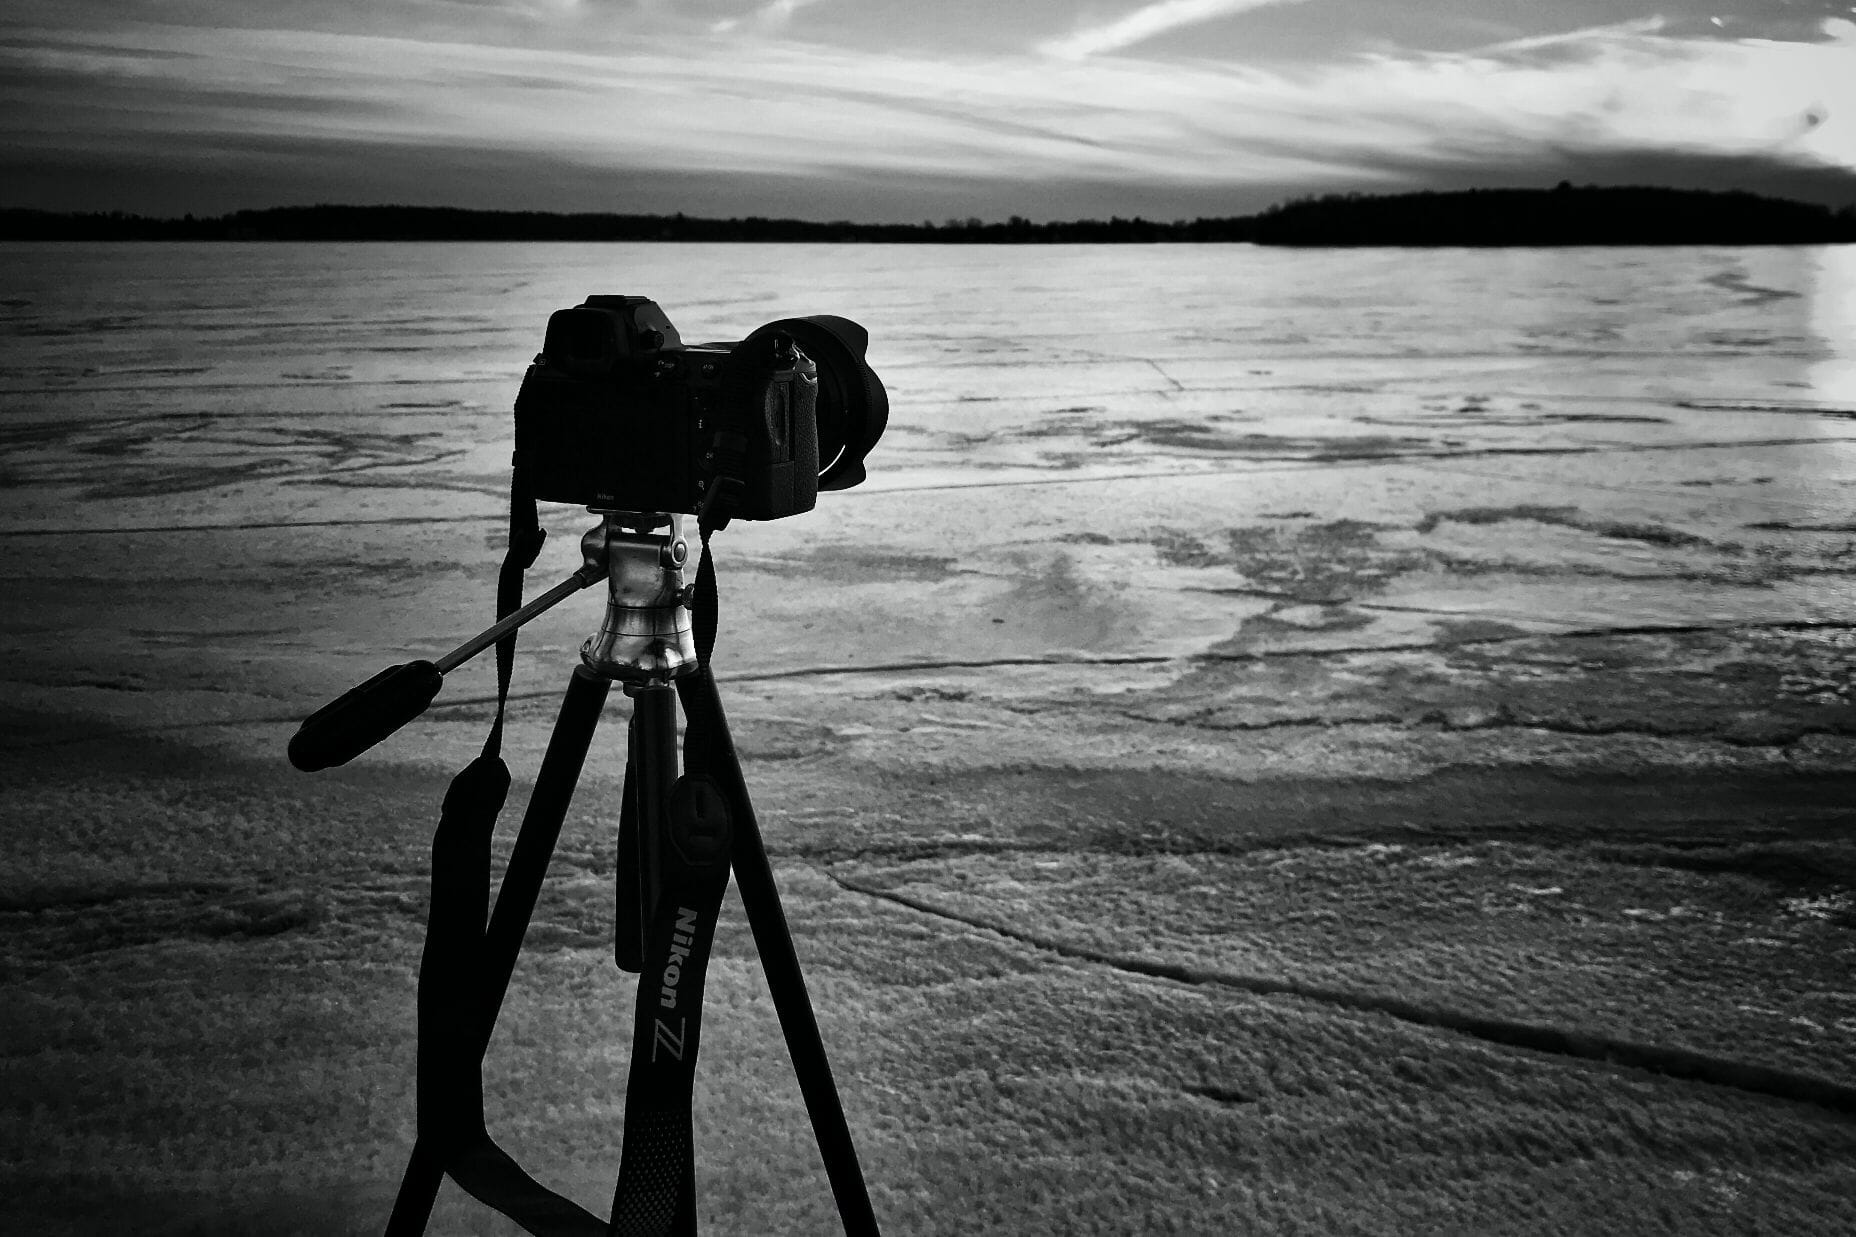 Do Tripods Make a Difference in Photography?